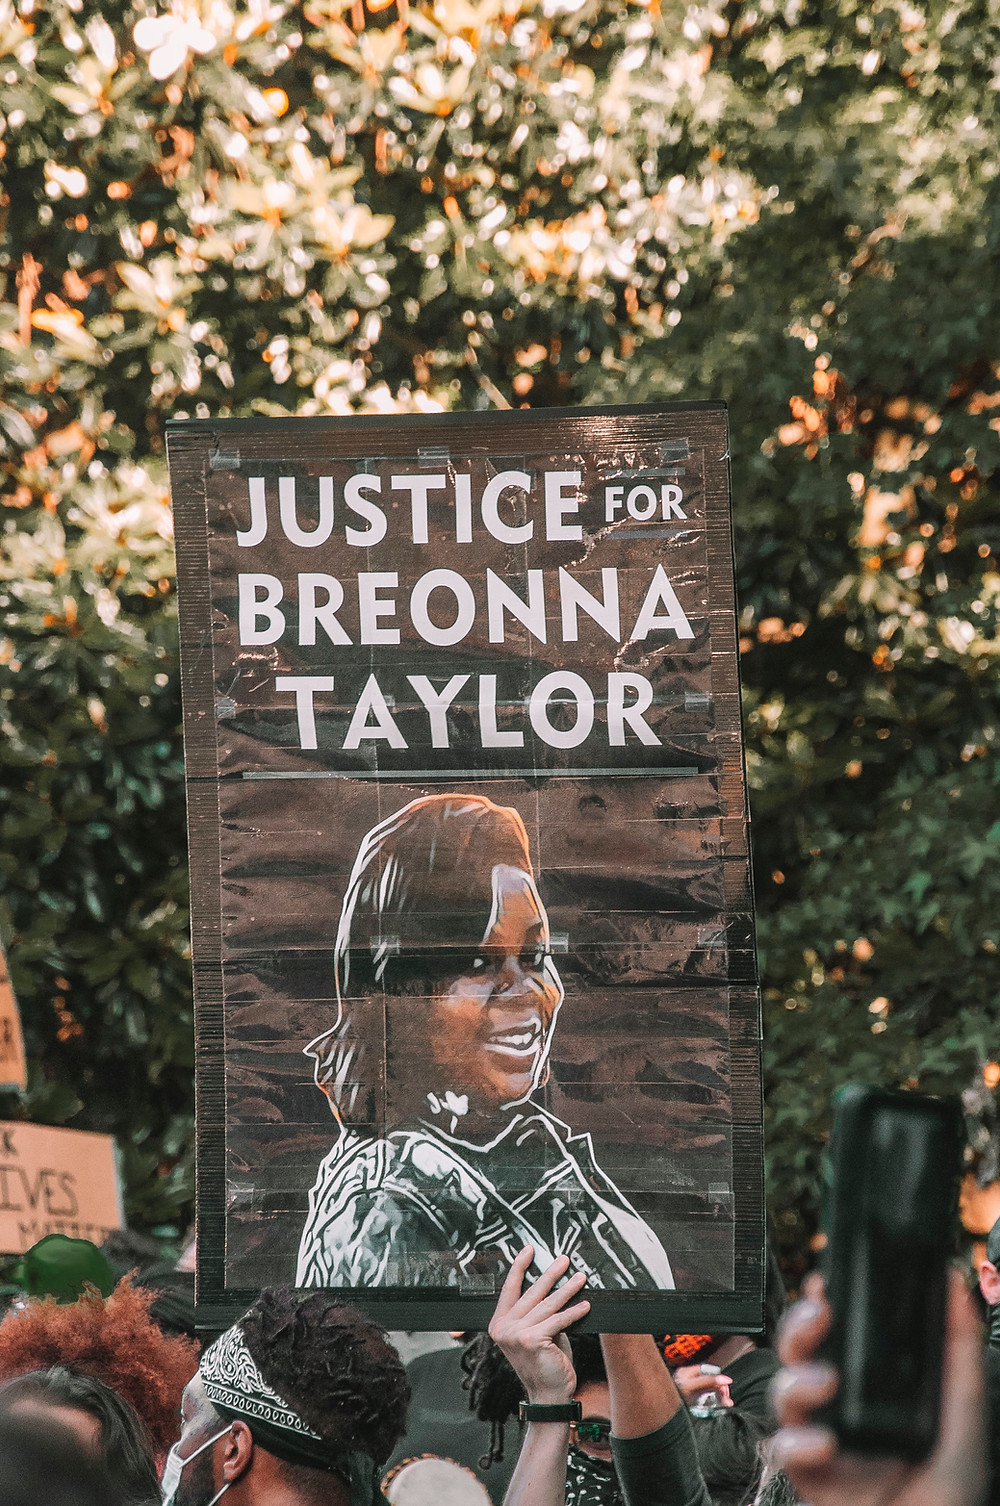 black lives matter racial justice protest Breonna Taylor